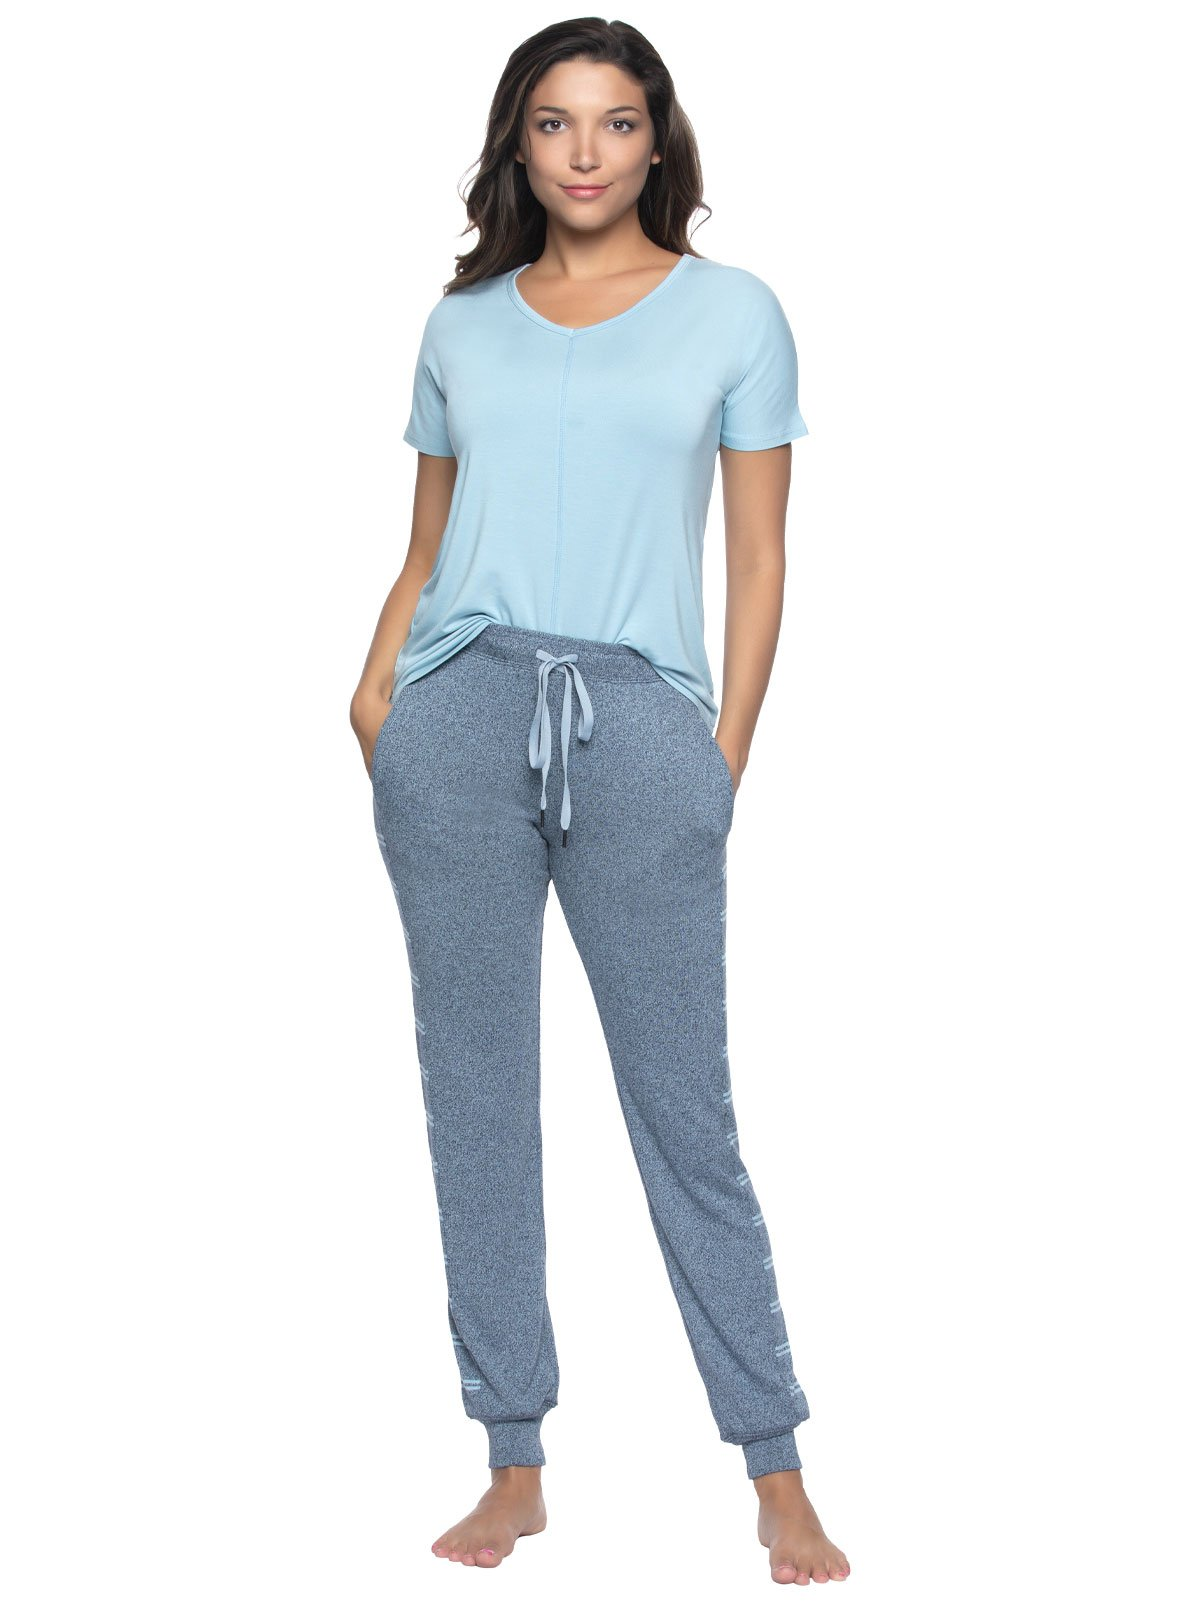 pj set color-sky blue fog